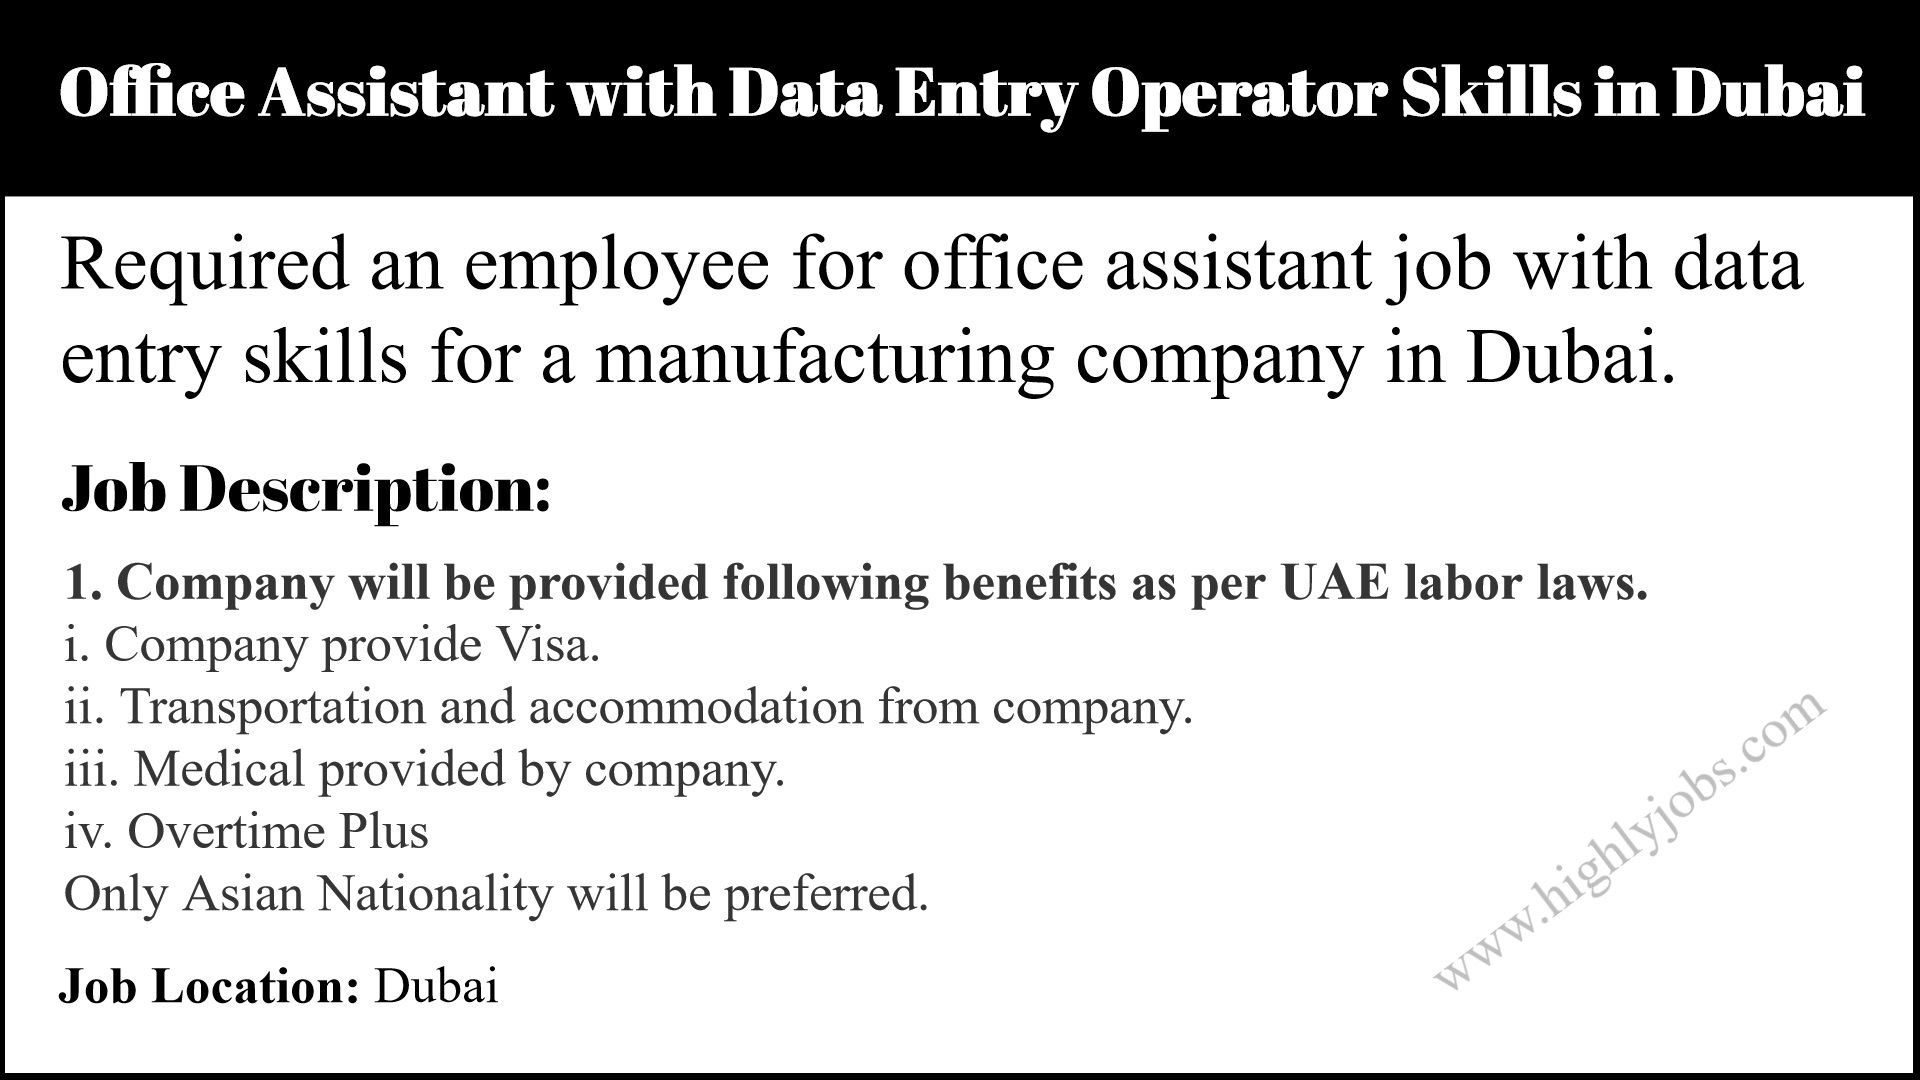 Office Assistant with Data Entry Operator Skills in Dubai